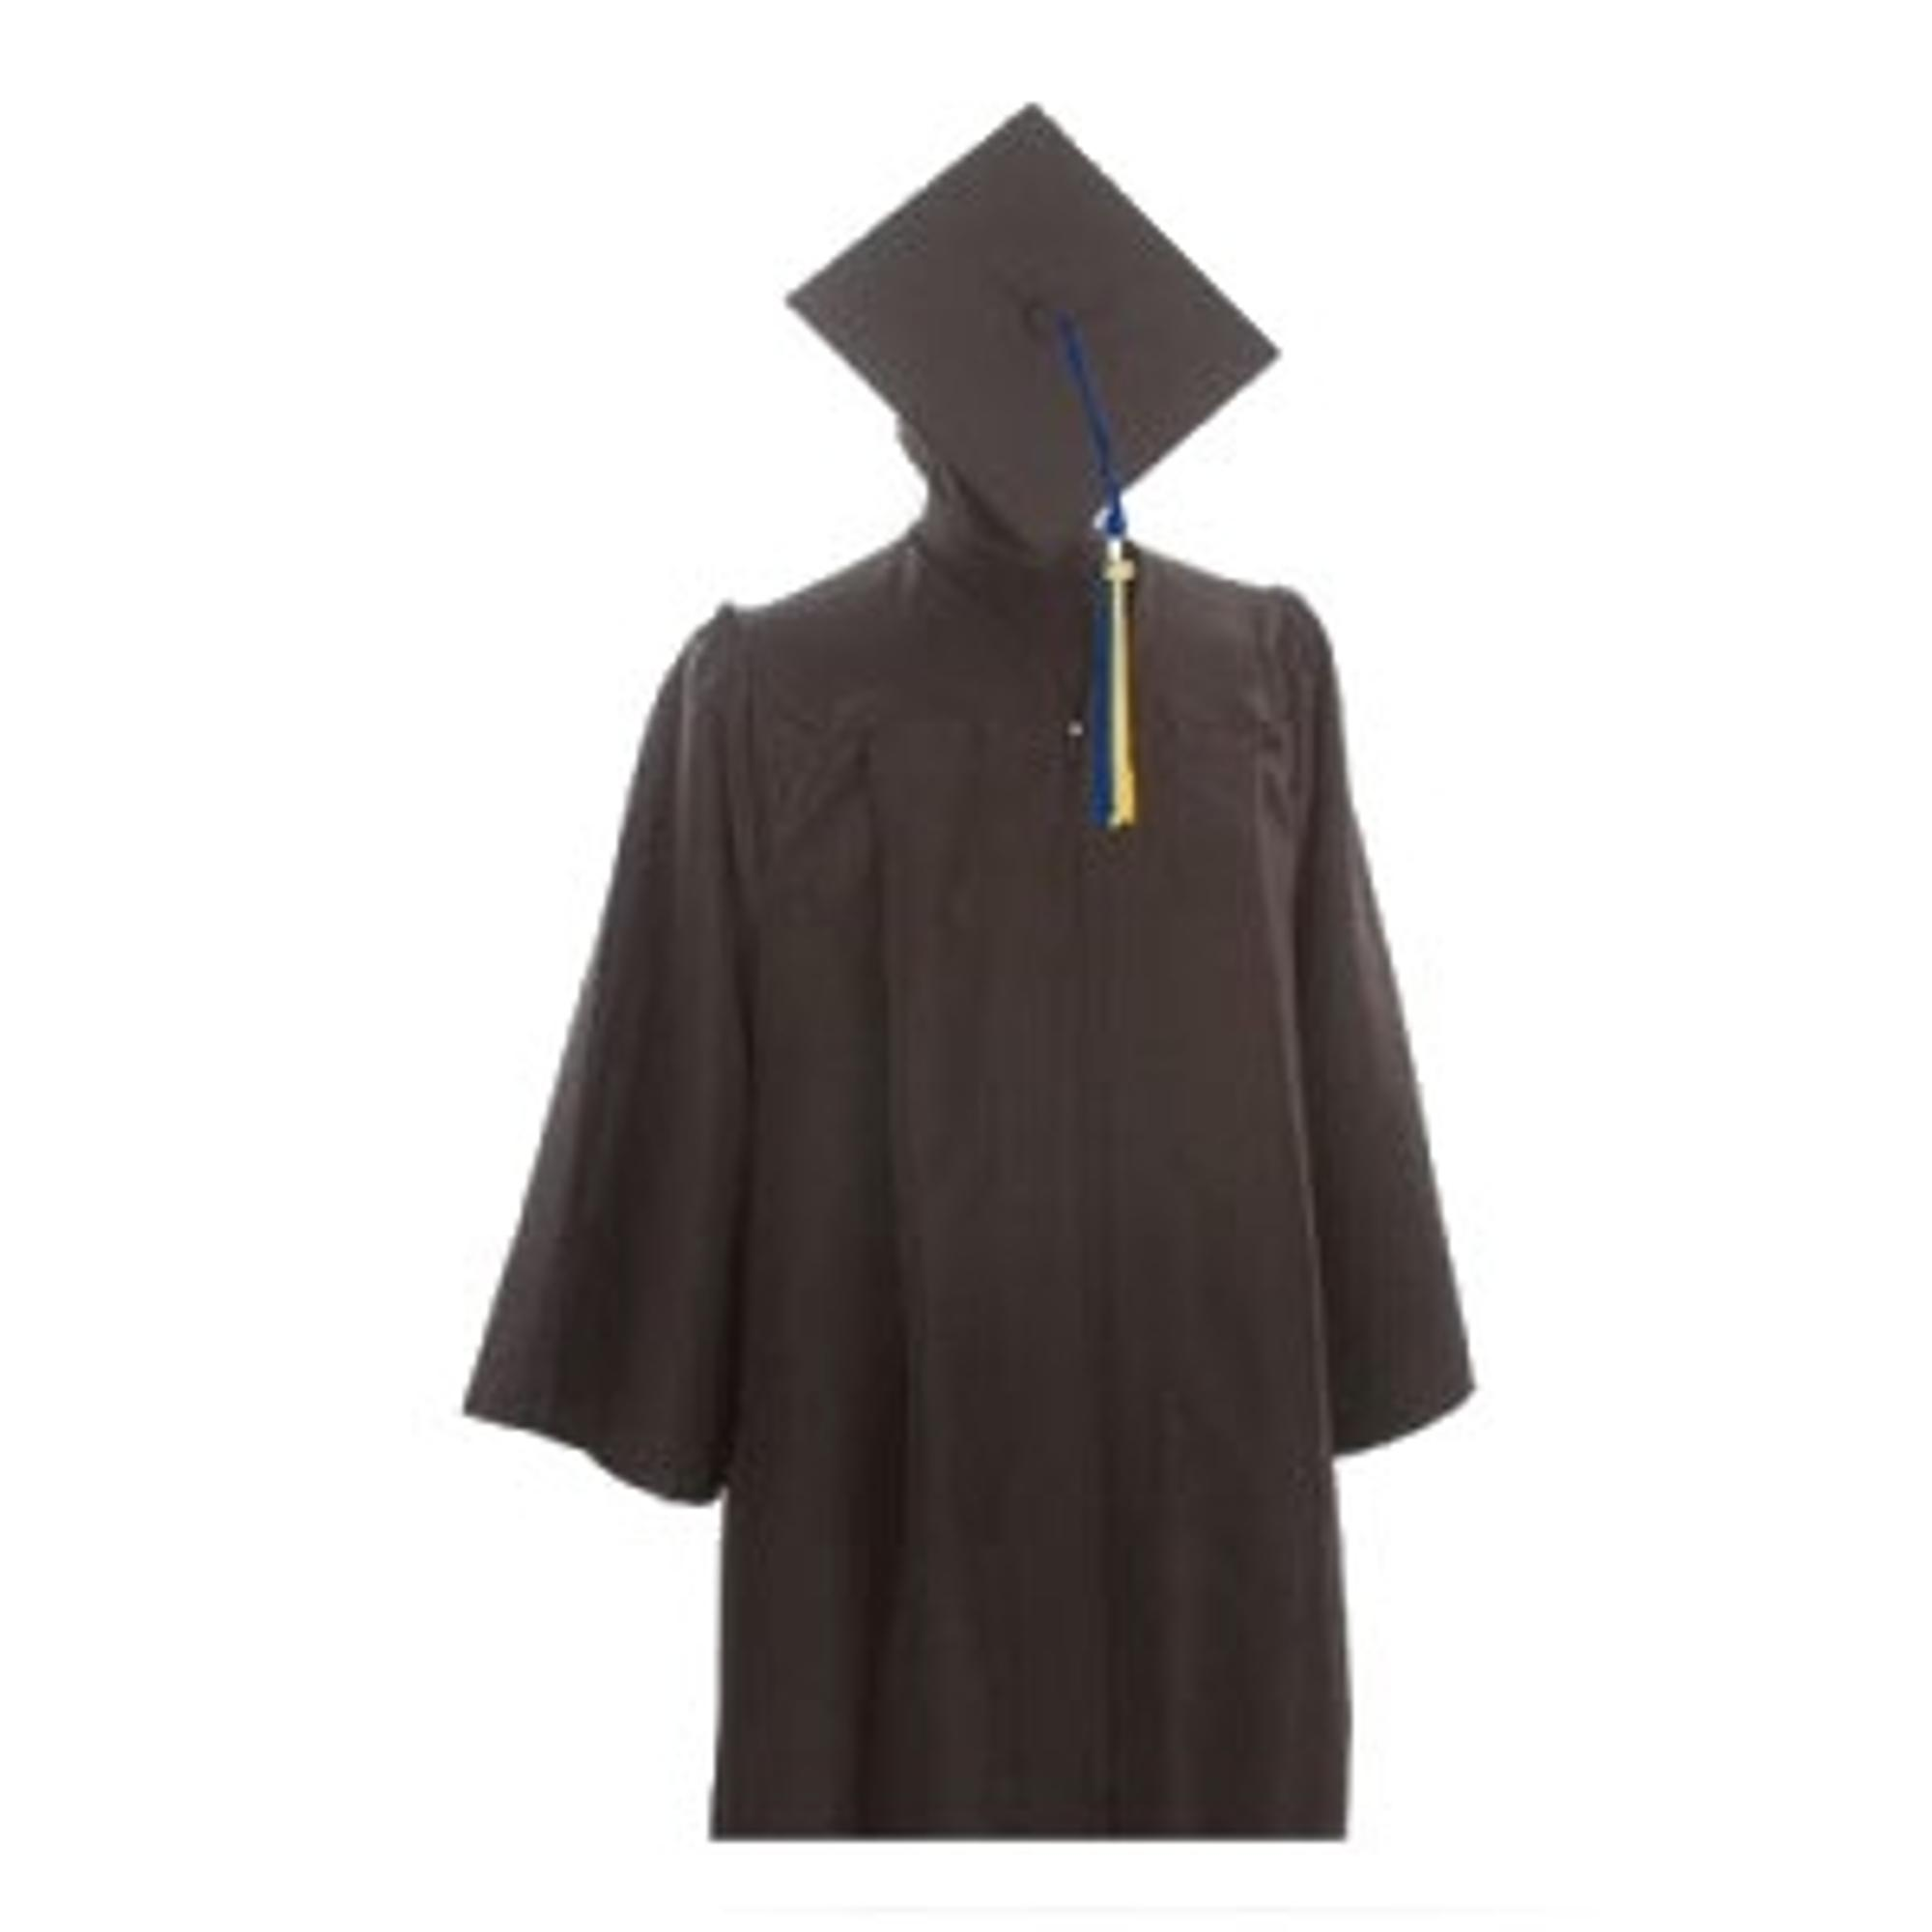 image of: Bachelor Keeper Gown, Cap & Tassel